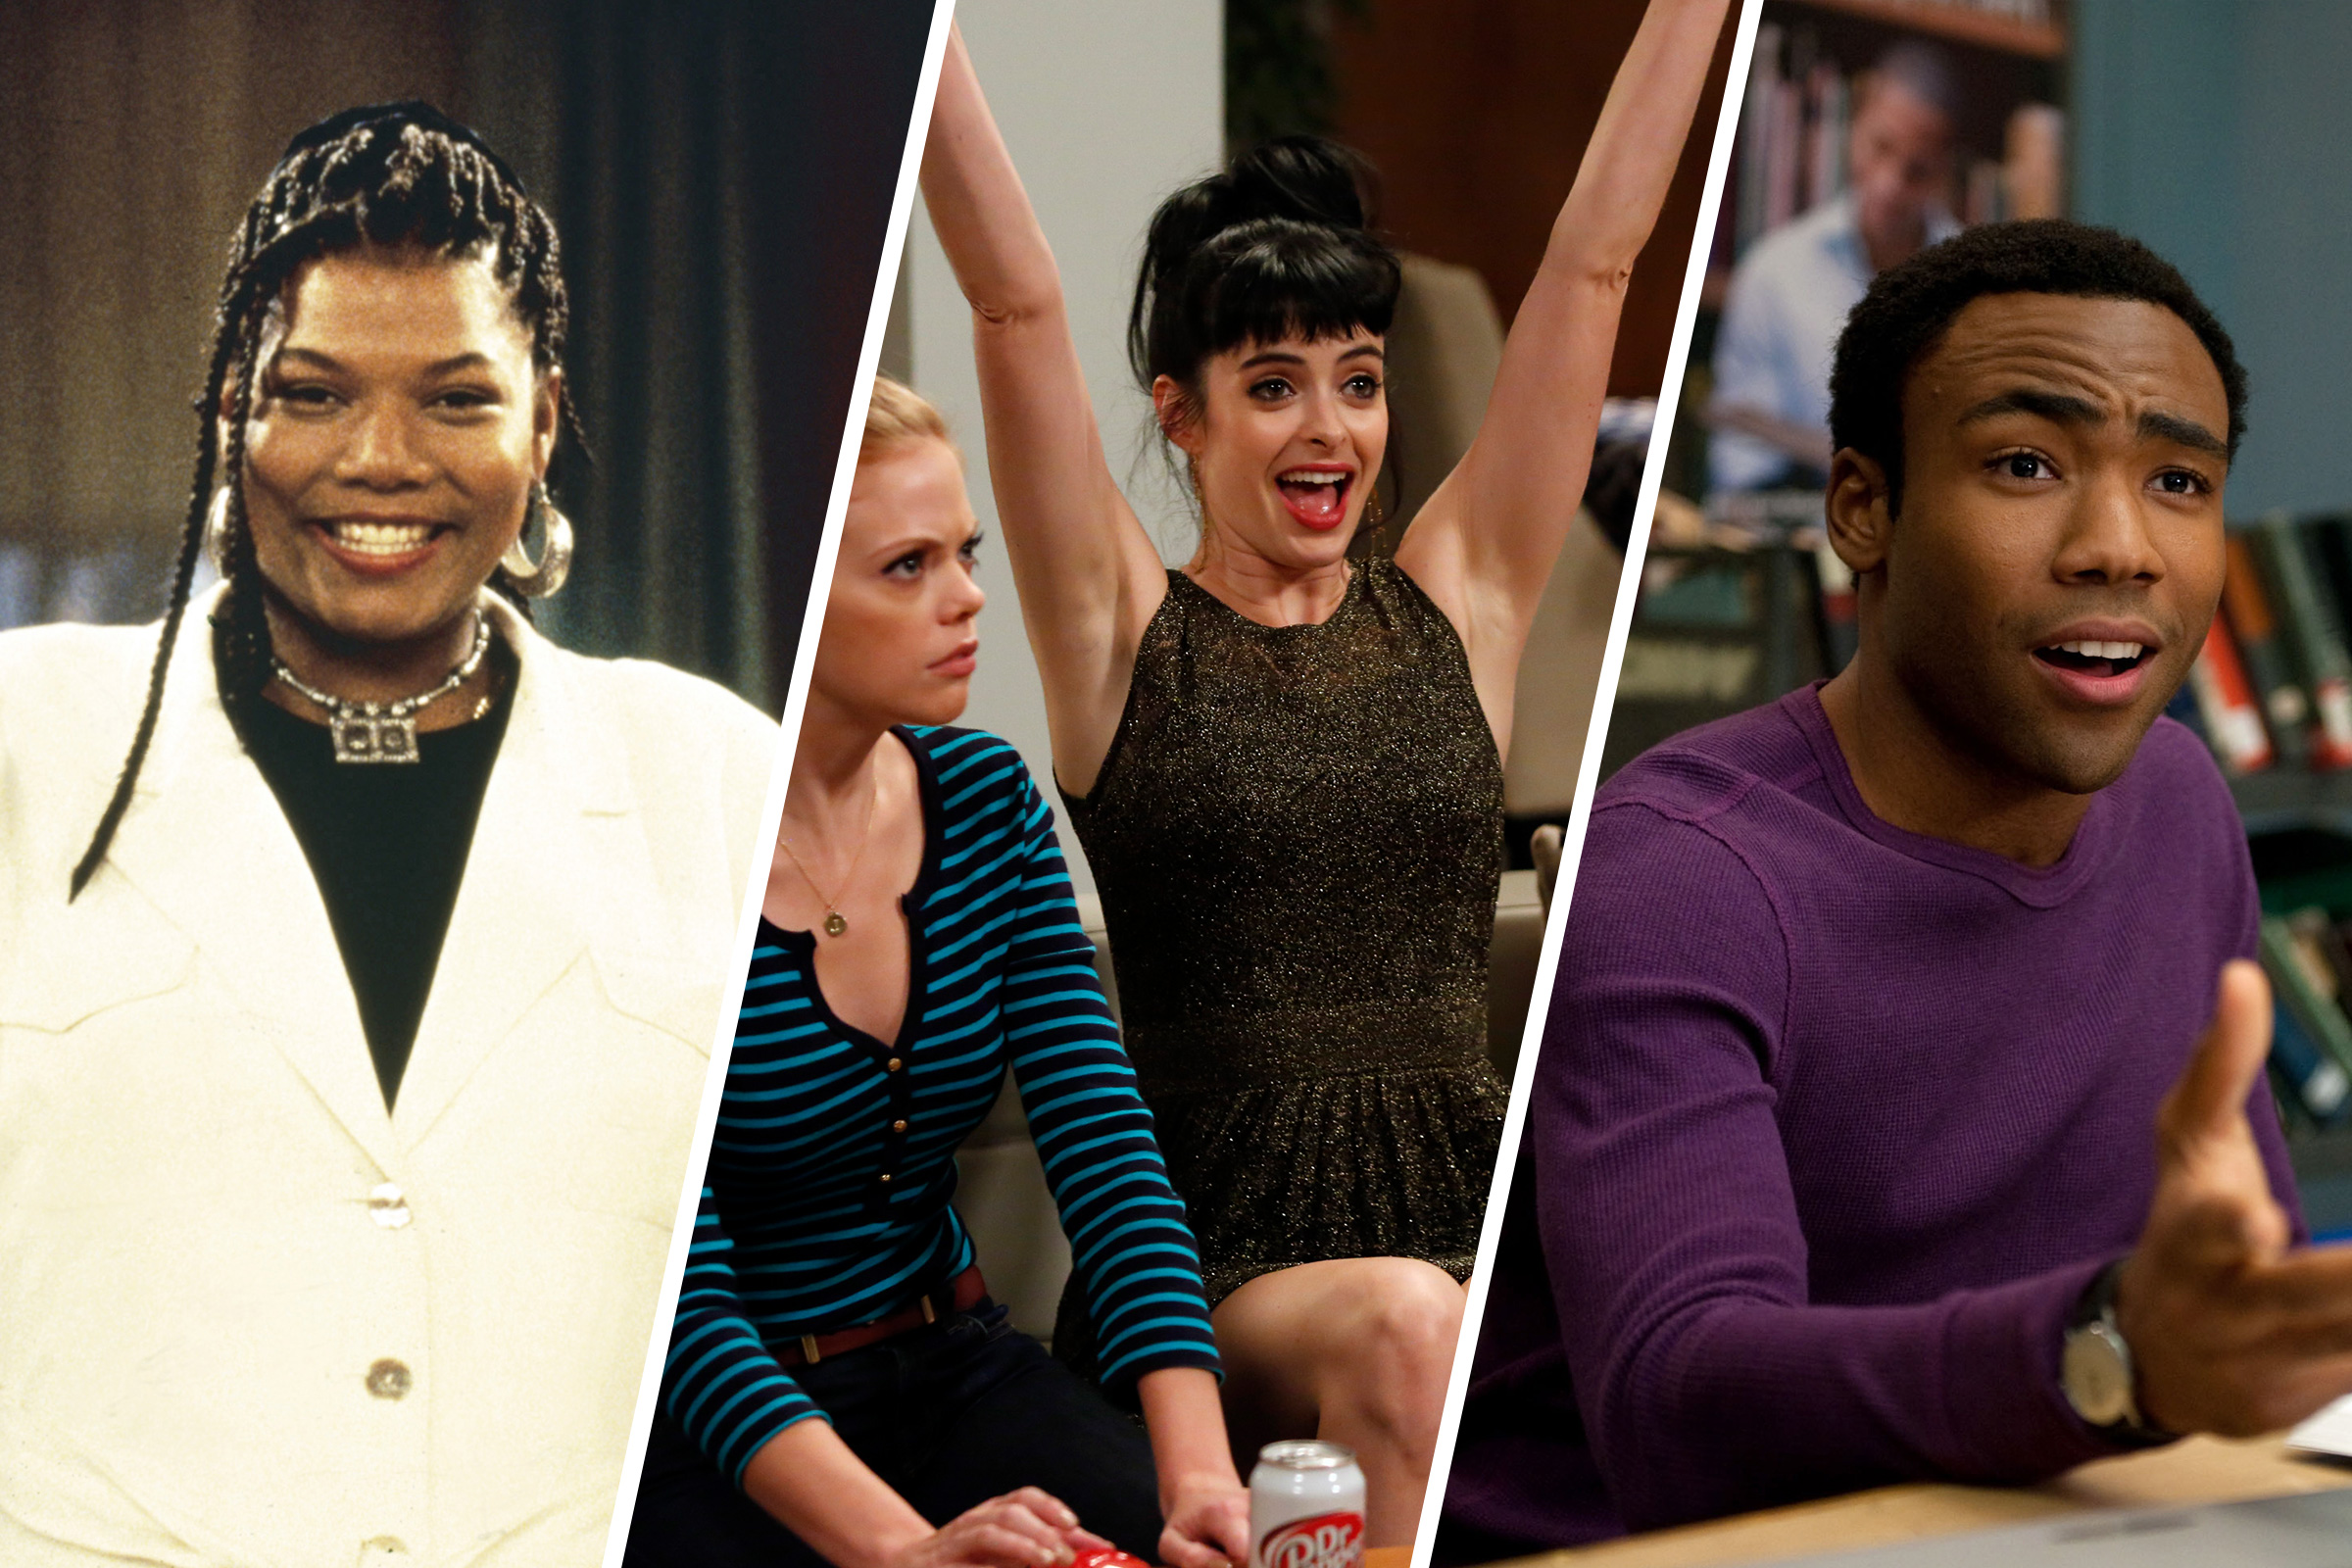 Queen Latifah in 'Living Single'; Krysten Ritter and Dreama Walker in 'Don't Trust the B---- in Apartment 23'; Donald Glover in 'Community'